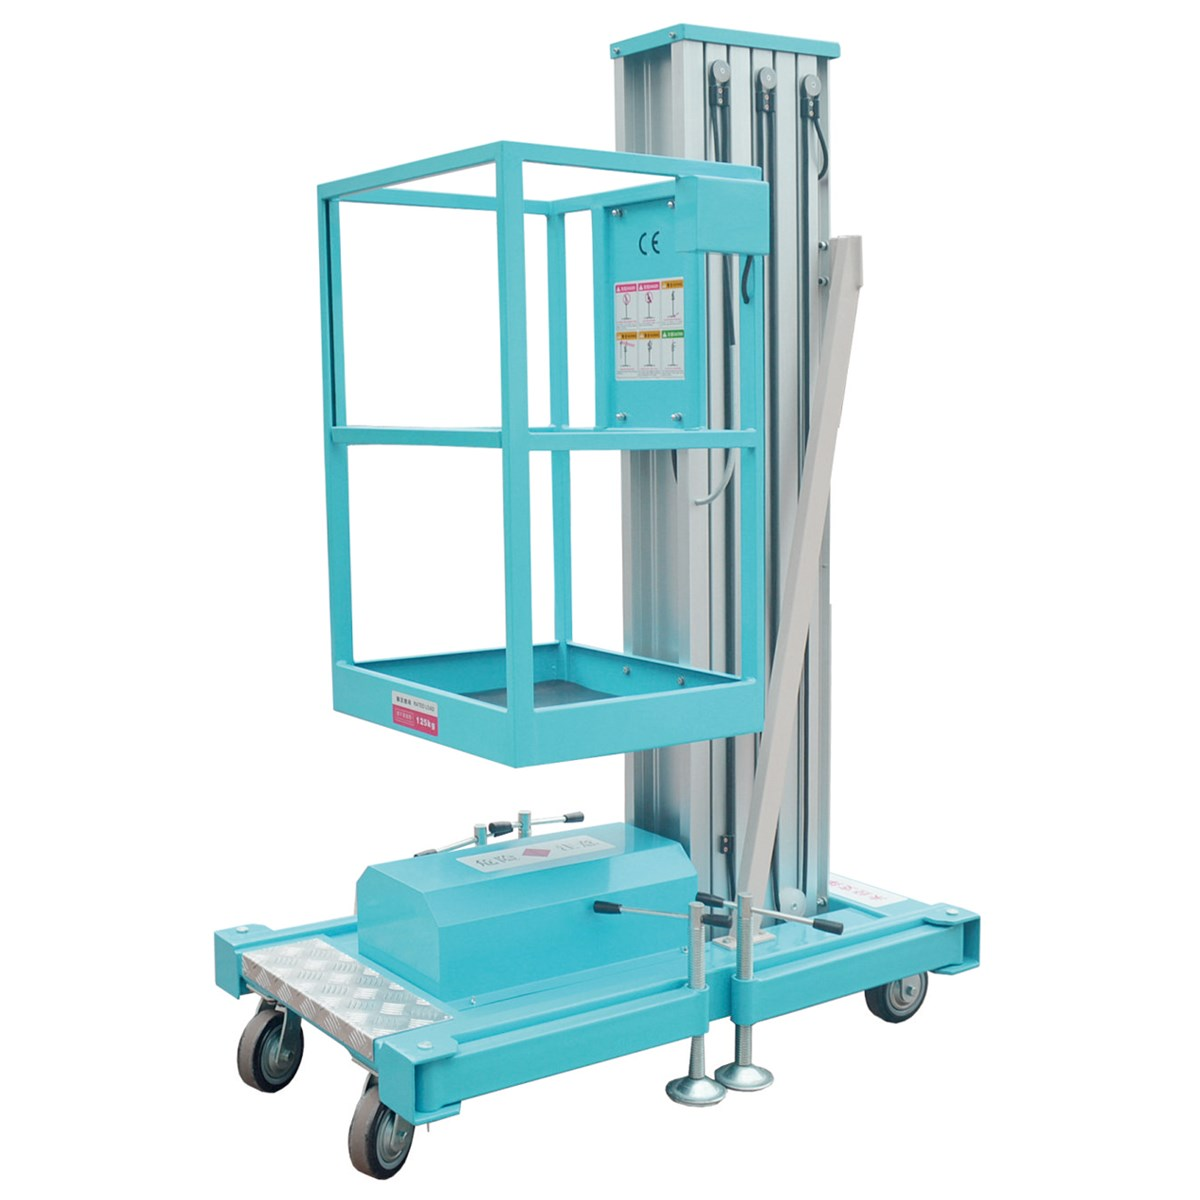 Mobile Hydraulic Lifts : M height insulating mobile hydraulic lift for warehouse